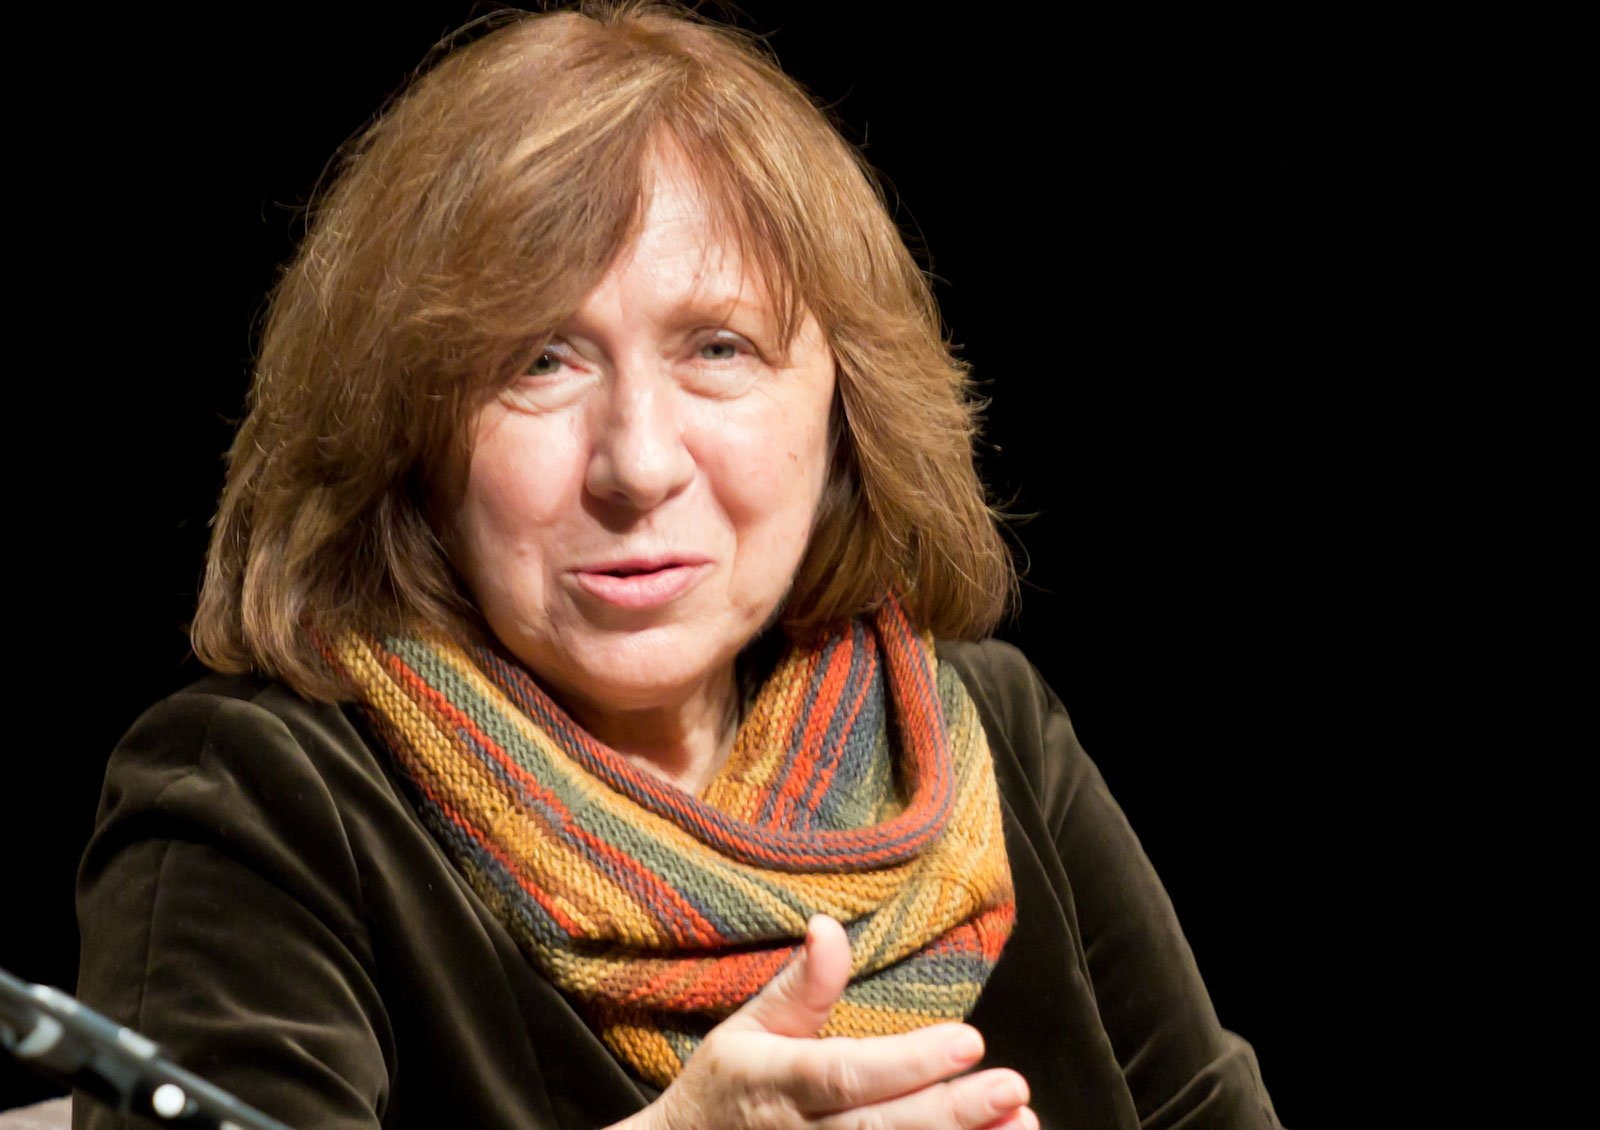 'First they stole our country, now they're abducting the best of us.' Svetlana Alexievich writes open letter